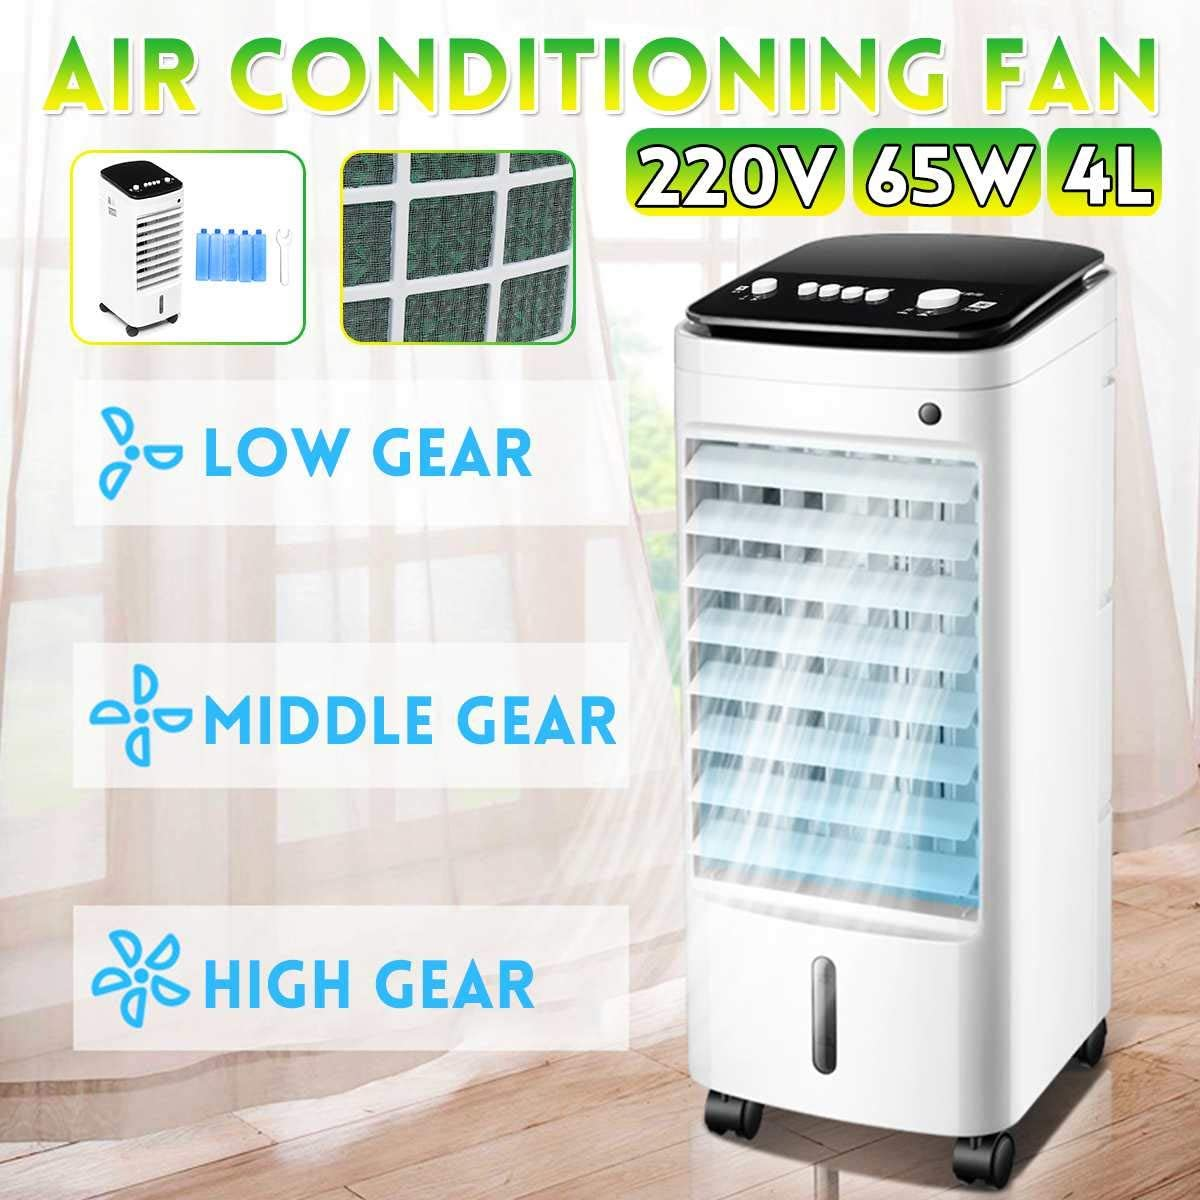 Details about Portable Air Conditioner Conditioning Fan Humidifier Cooler Cooling System